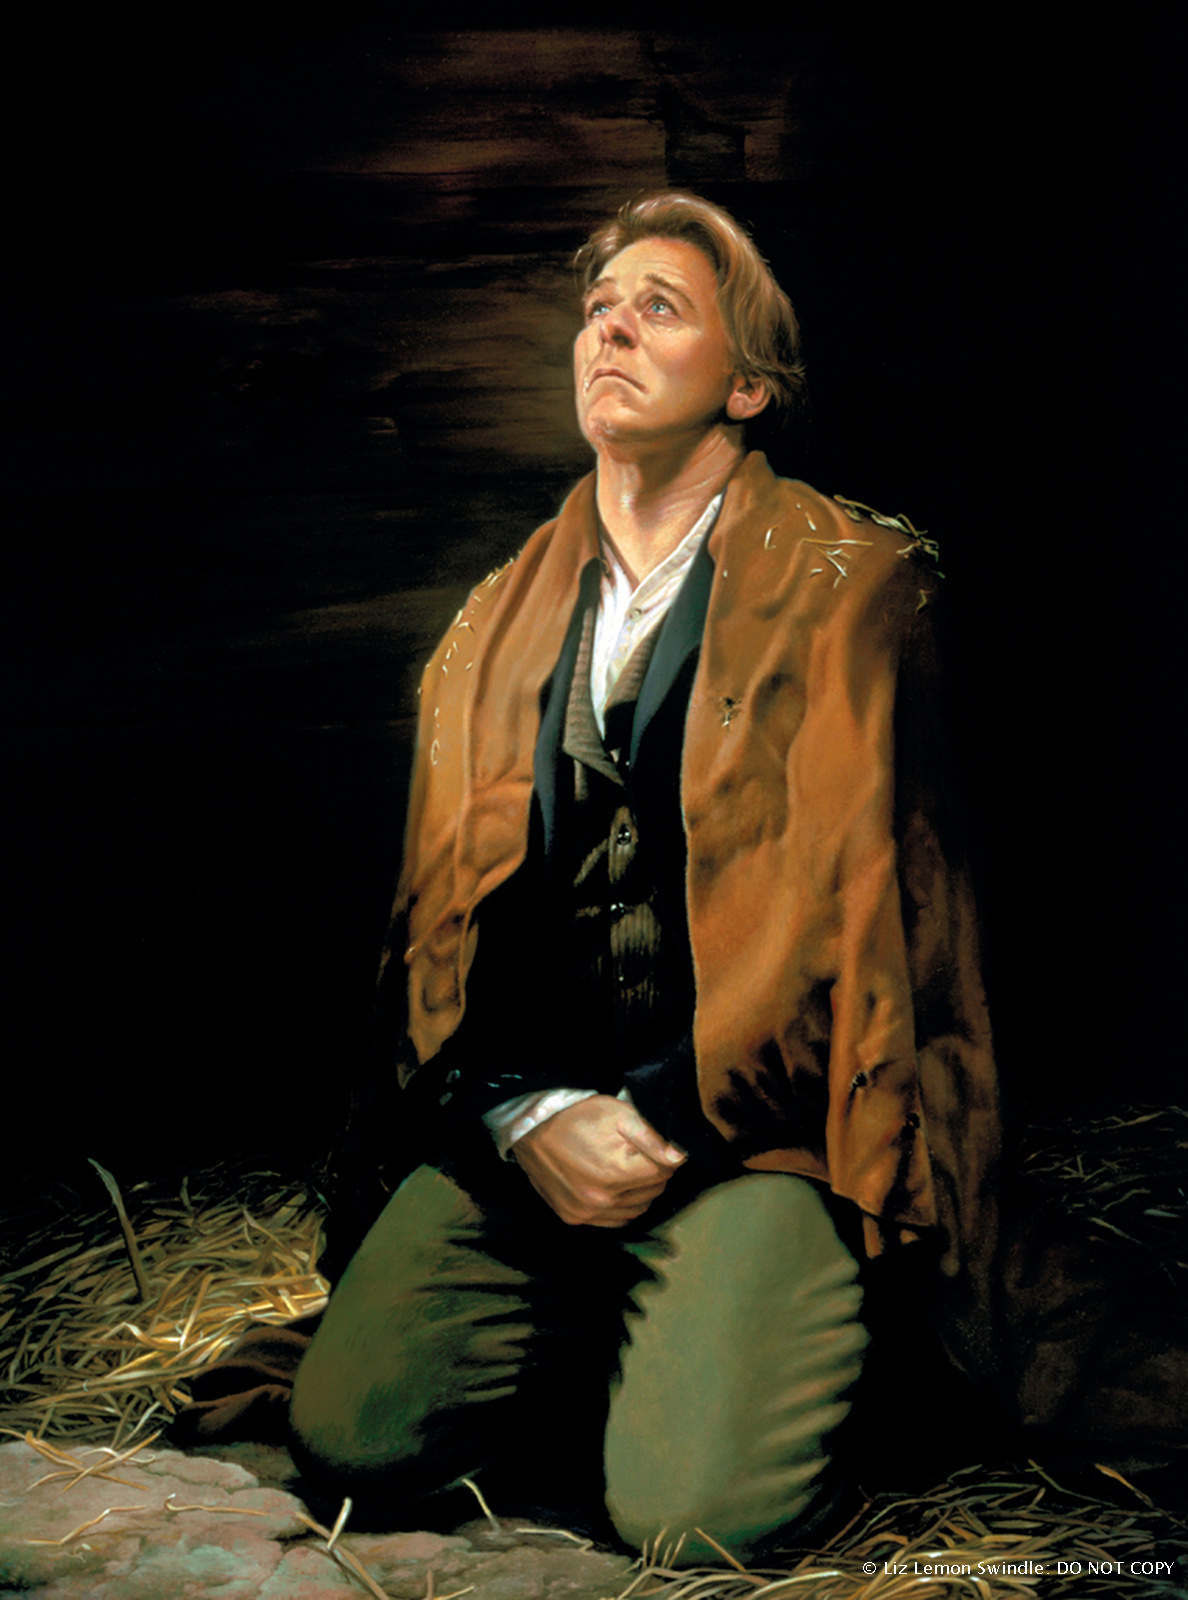 A painting by Liz Lemon Swindle of Joseph Smith in Liberty Jail kneeling and looking upwards with tears running down his face.